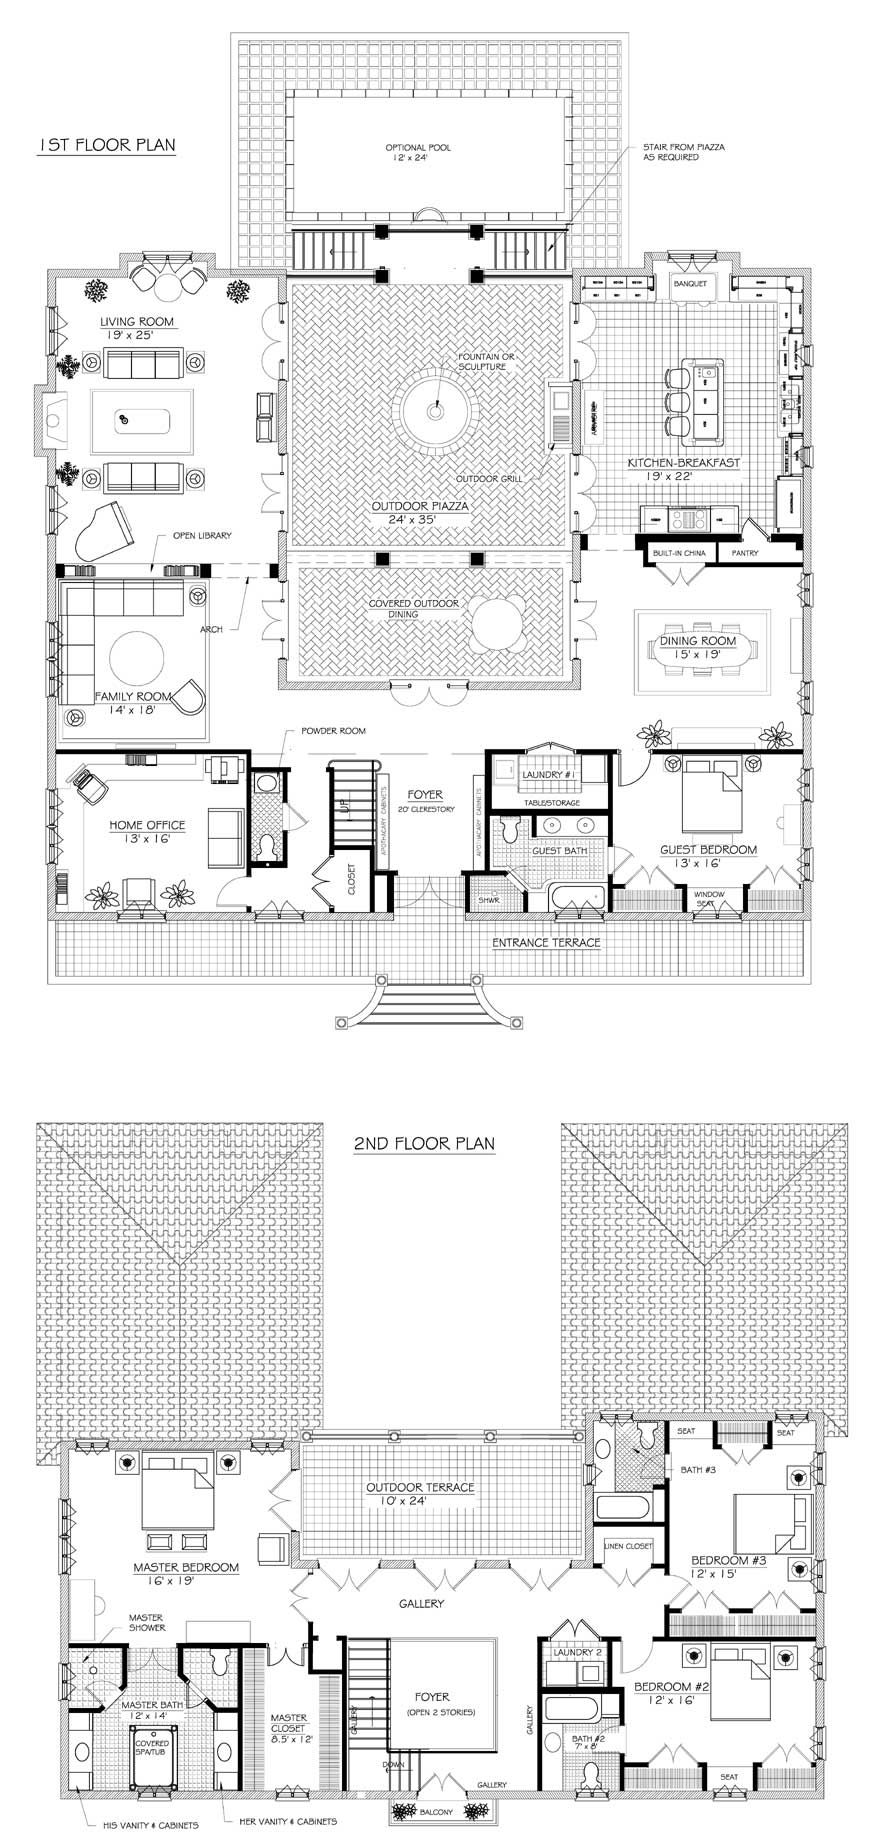 French house plans on pinterest u shaped houses for U shaped house plans with courtyard pool